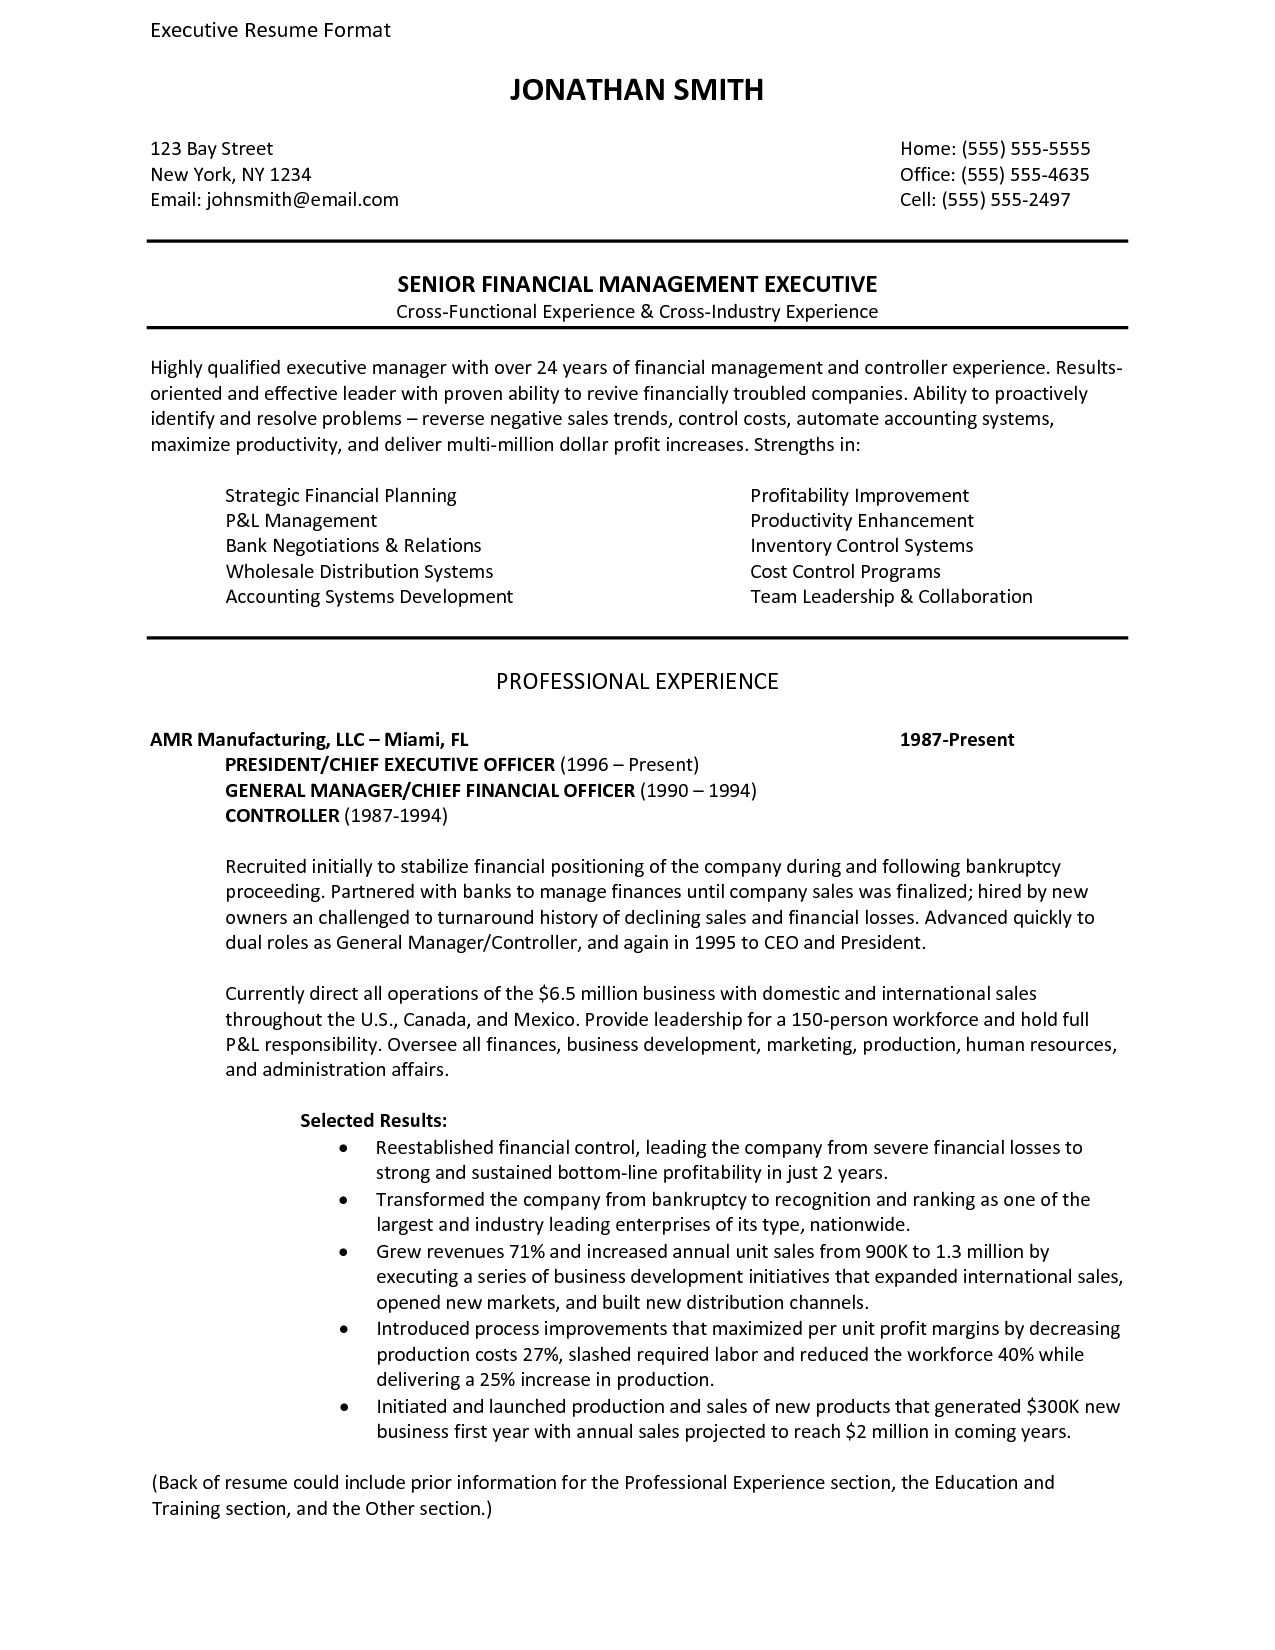 fmcg format sample executive resume cover letter. Resume Example. Resume CV Cover Letter